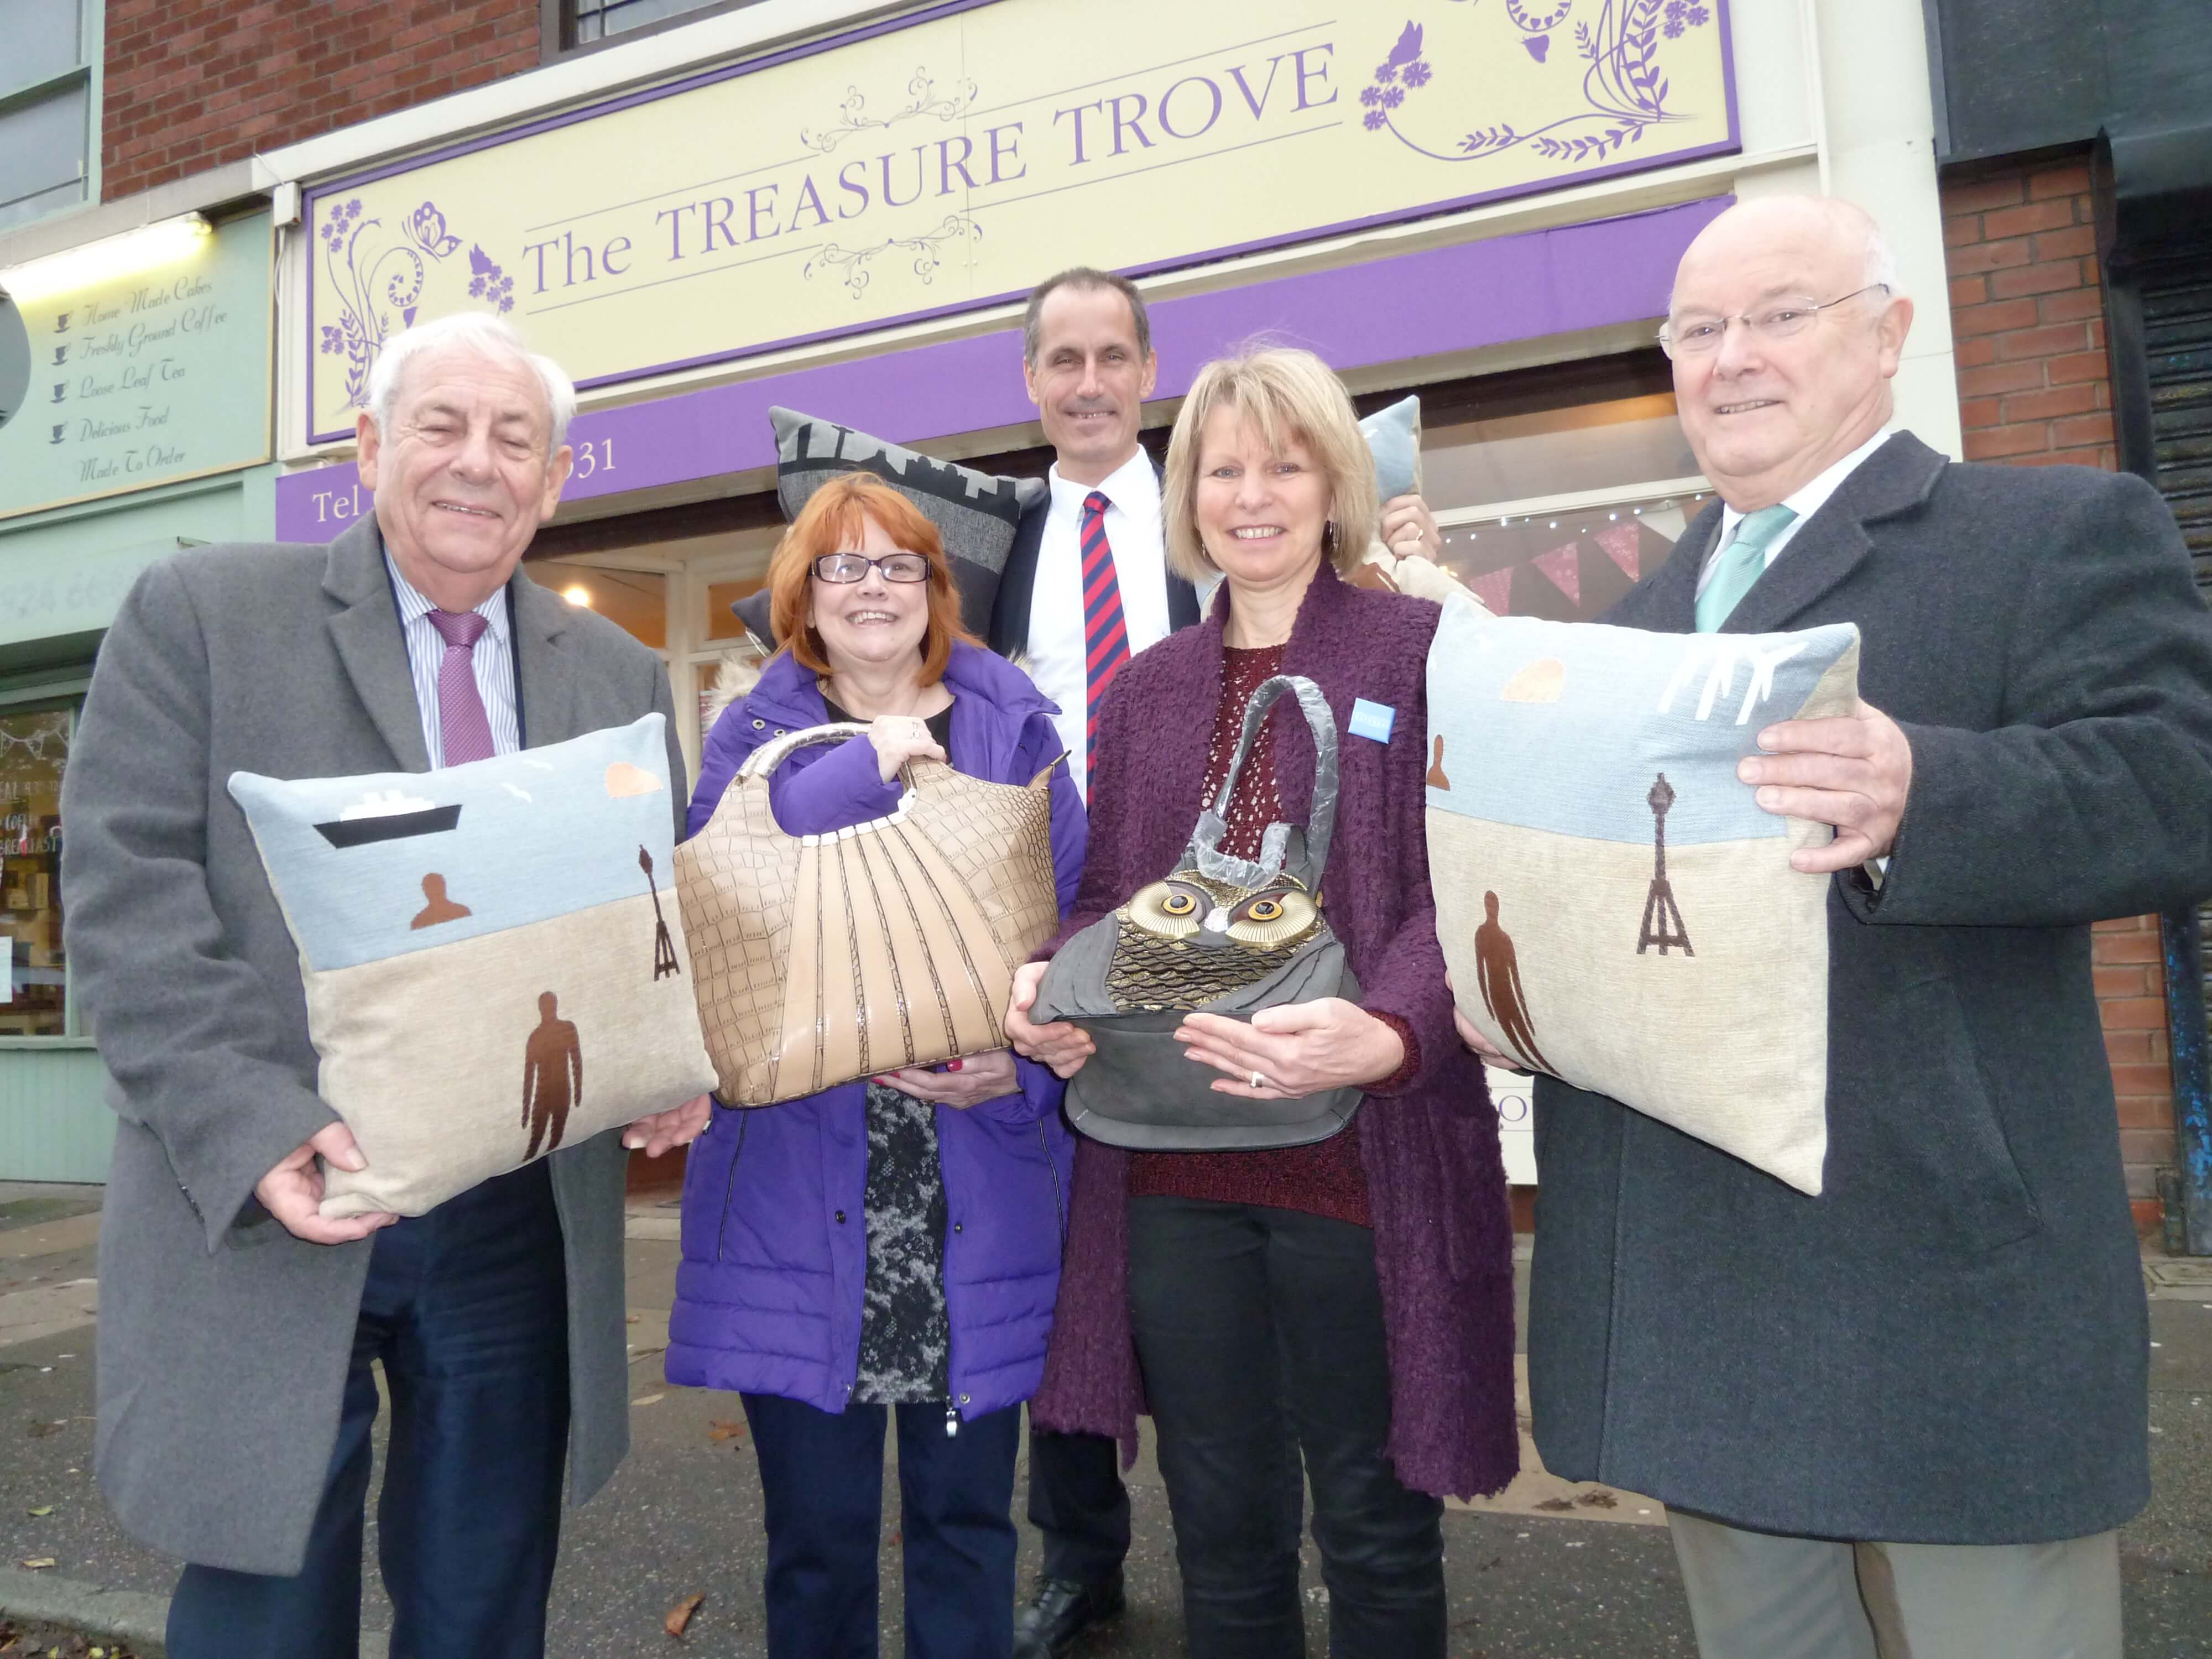 Bill Esterson and Federation of Small Businesses national chairman John Allen and Merseyside branch chairman Chris Burgess at Crosby's The Treasure Trove with Wendy Edwards and Lynn Gilbertson.